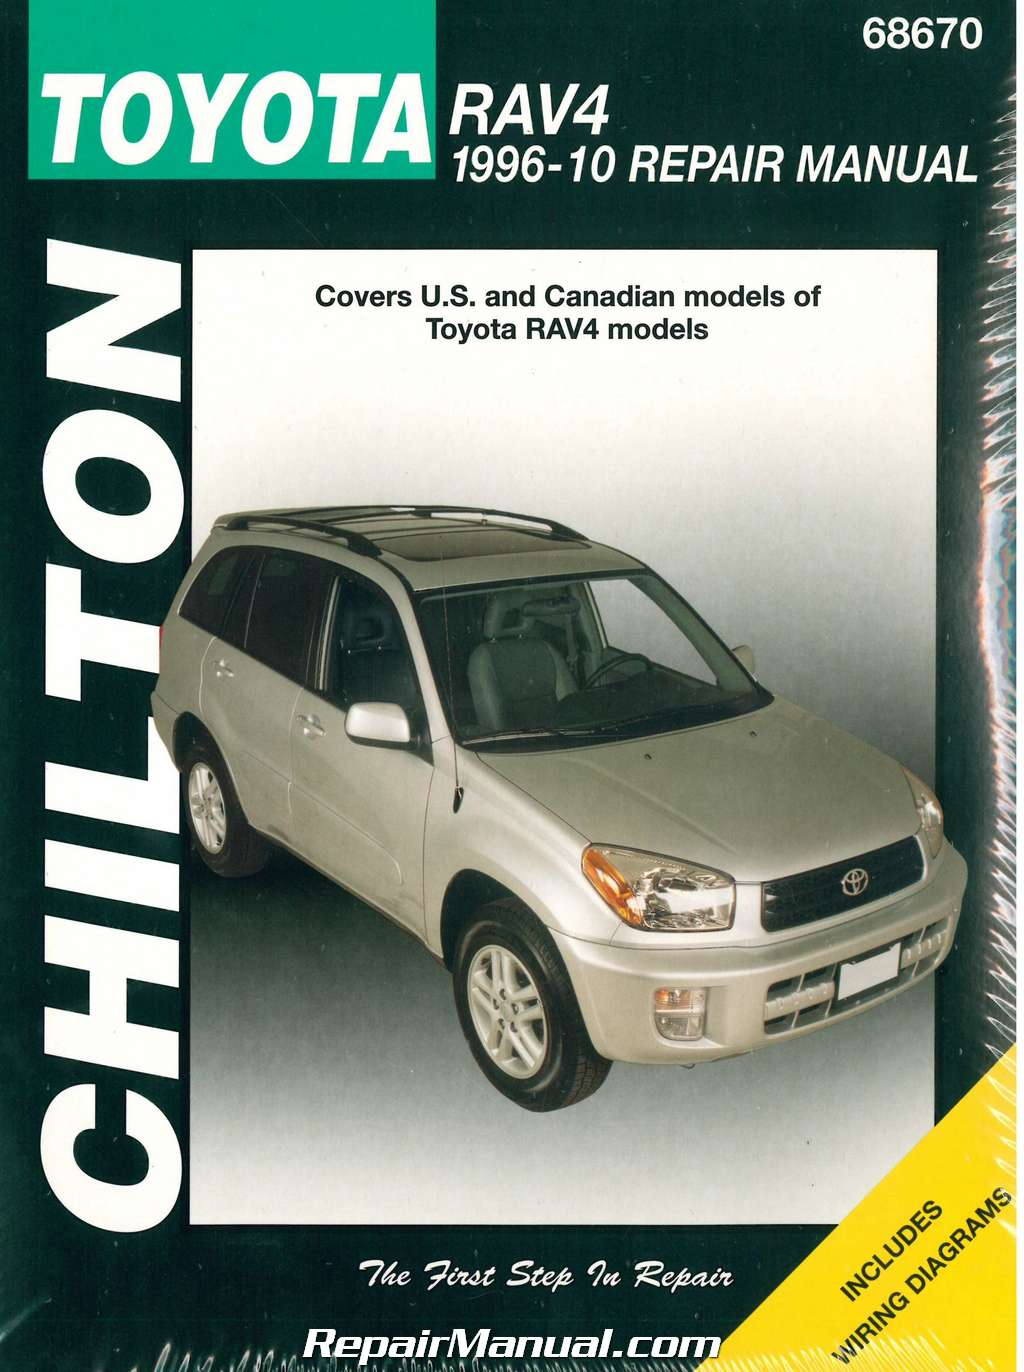 chilton toyota rav4 1996 2010 repair manual rh repairmanual com 1996 rav4  workshop manual free download 1996 rav4 workshop manual